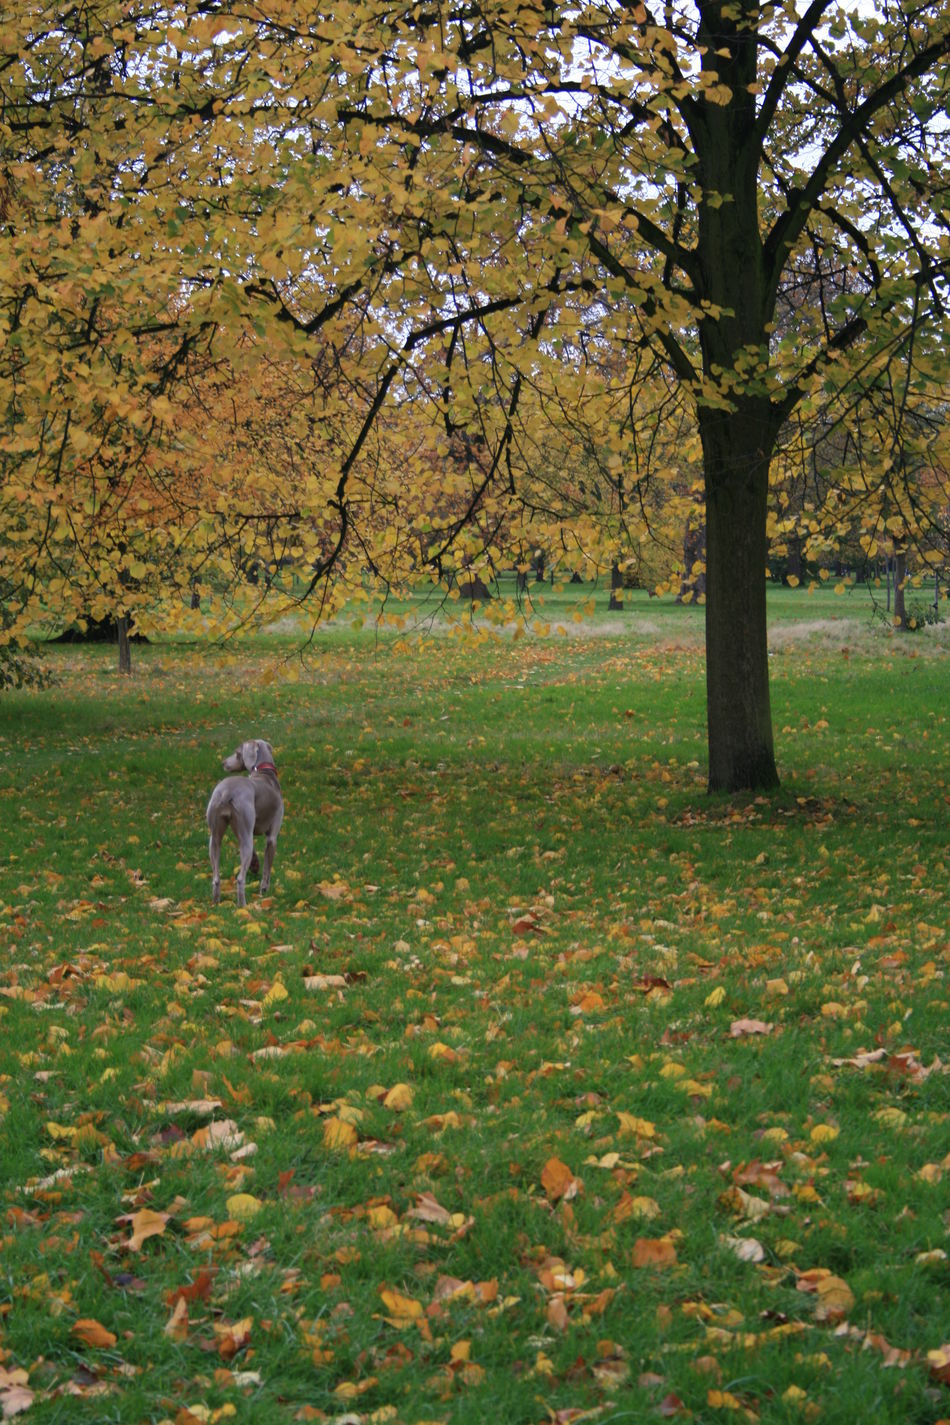 Autumn Beauty In Nature Dog Walker Domestic Animals Landscape Outdoors Tree London